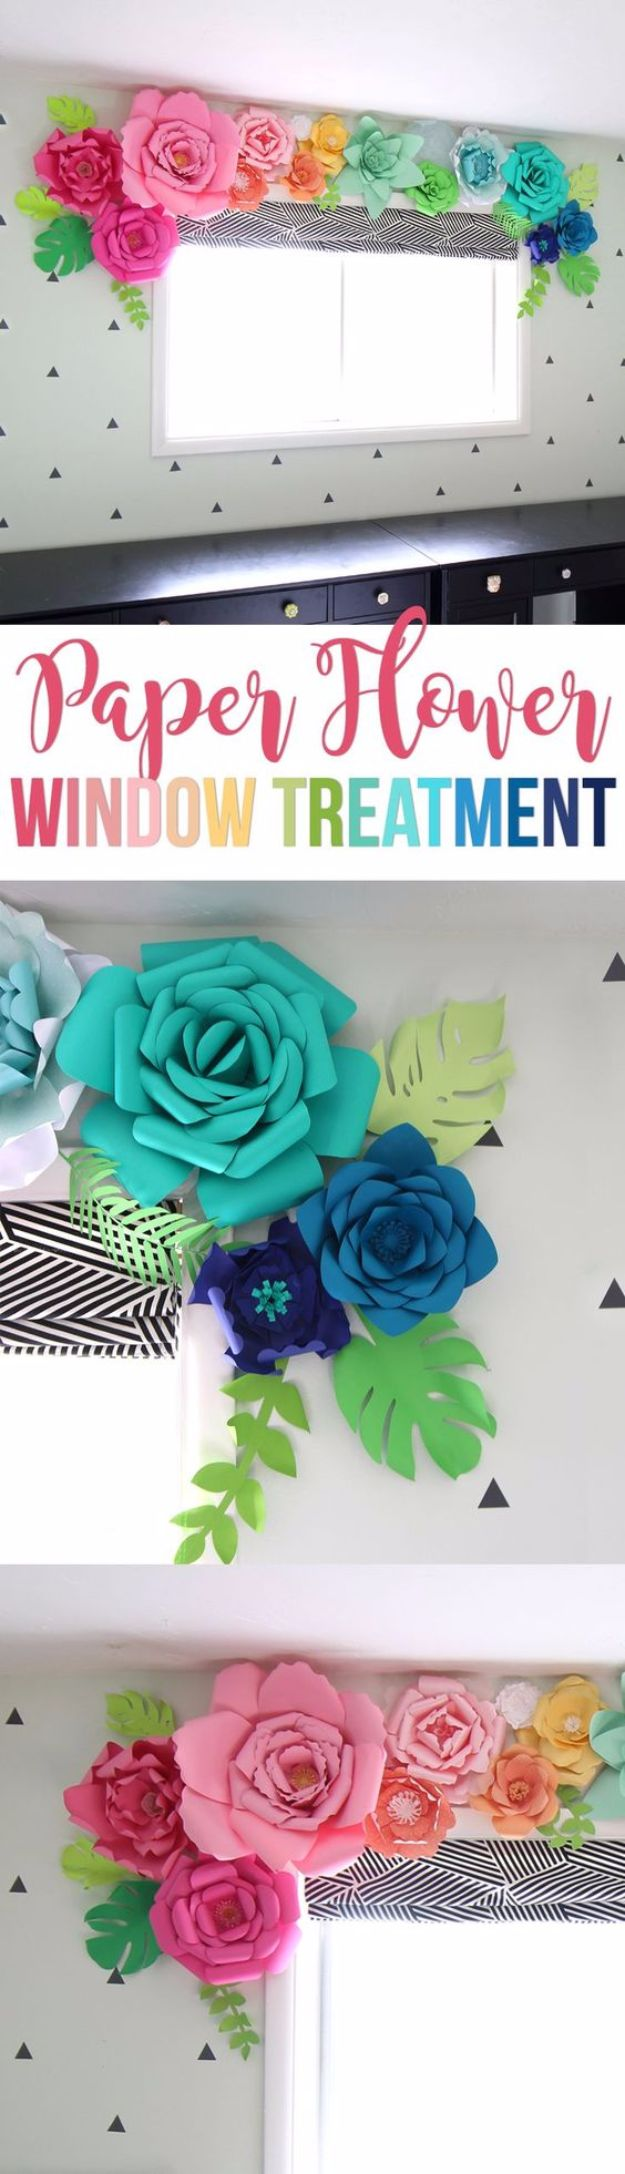 DIY Paper Flowers - Giant Paper Flower Window Treatment - How To Make A Paper Flower - Large Wedding Backdrop for Wall Decor - Easy Tissue Paper Flower Tutorial for Kids - Giant Projects for Photo Backdrops - Daisy, Roses, Bouquets, Centerpieces - Cricut Template and Step by Step Tutorial http://diyjoy.com/diy-paper-flowers